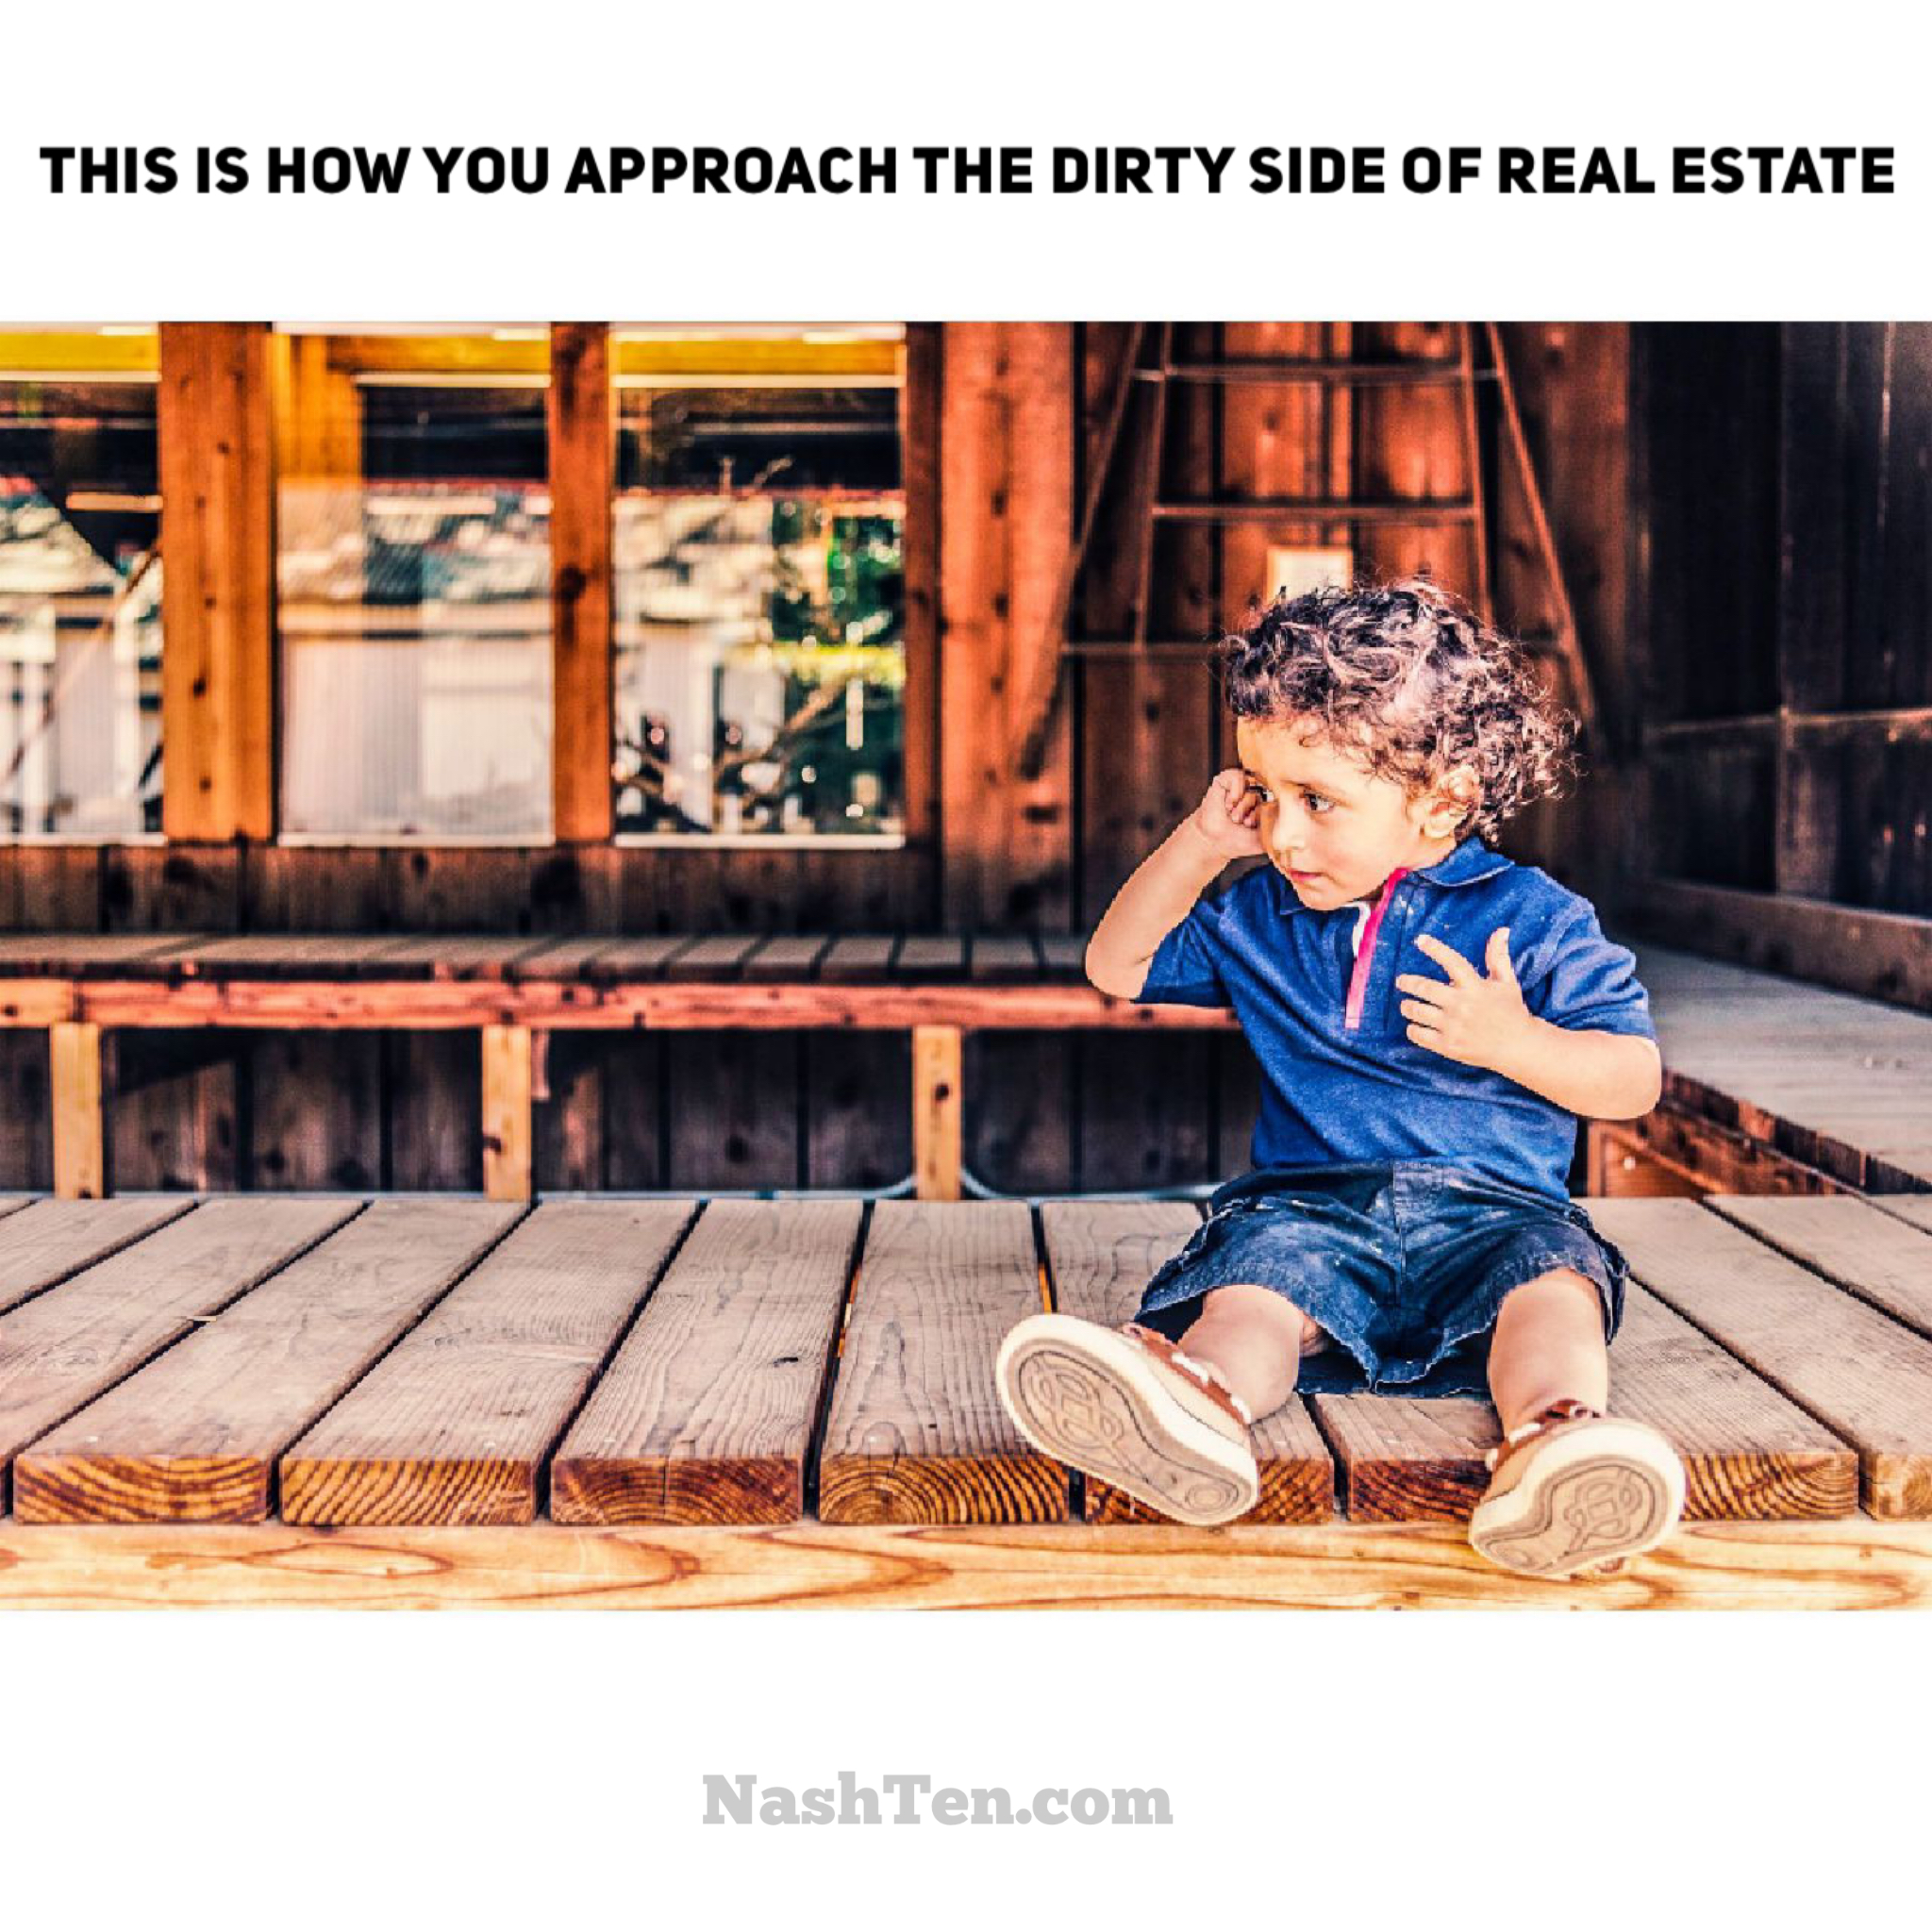 How you tackle negotiations, the dirty side of real estate